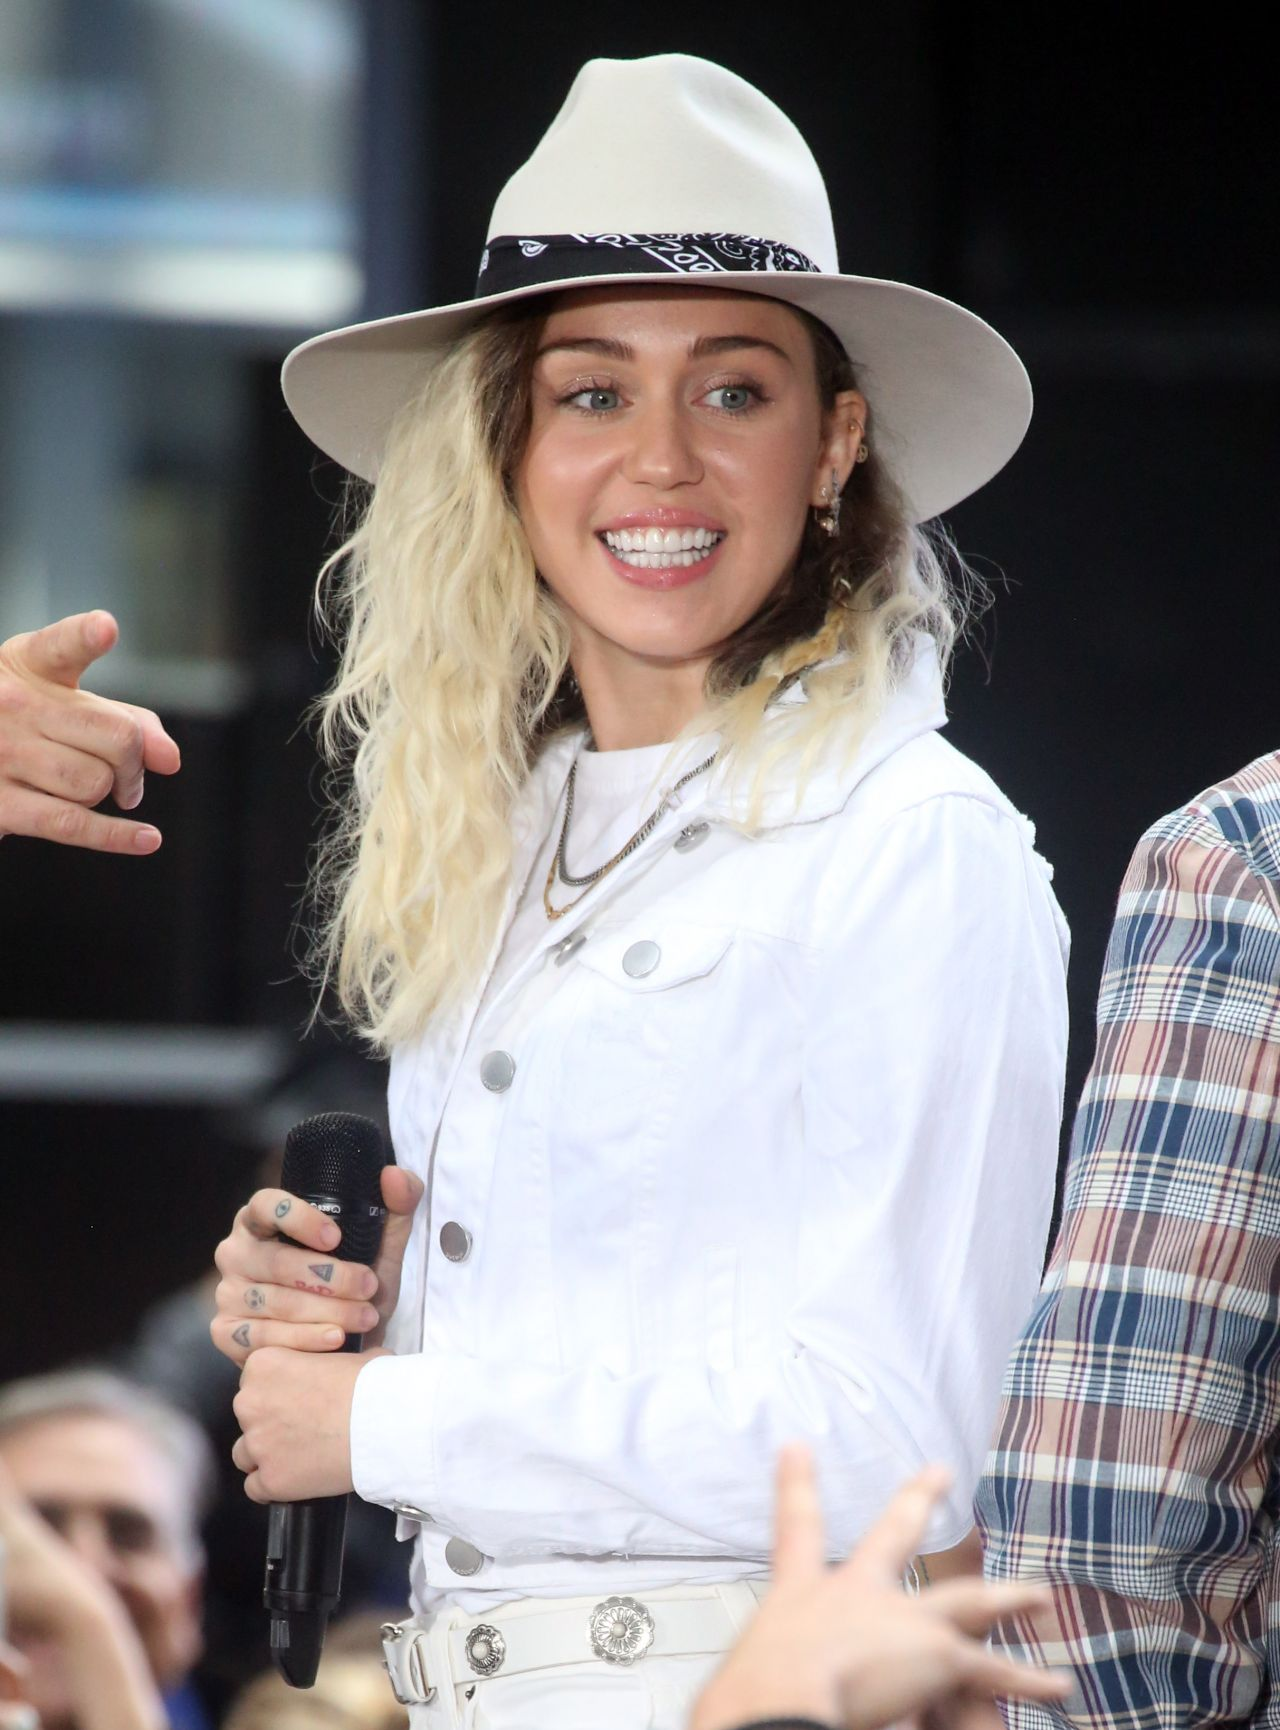 Miley Cyrus Performs Live Nbc Quot Today Quot Show In New York